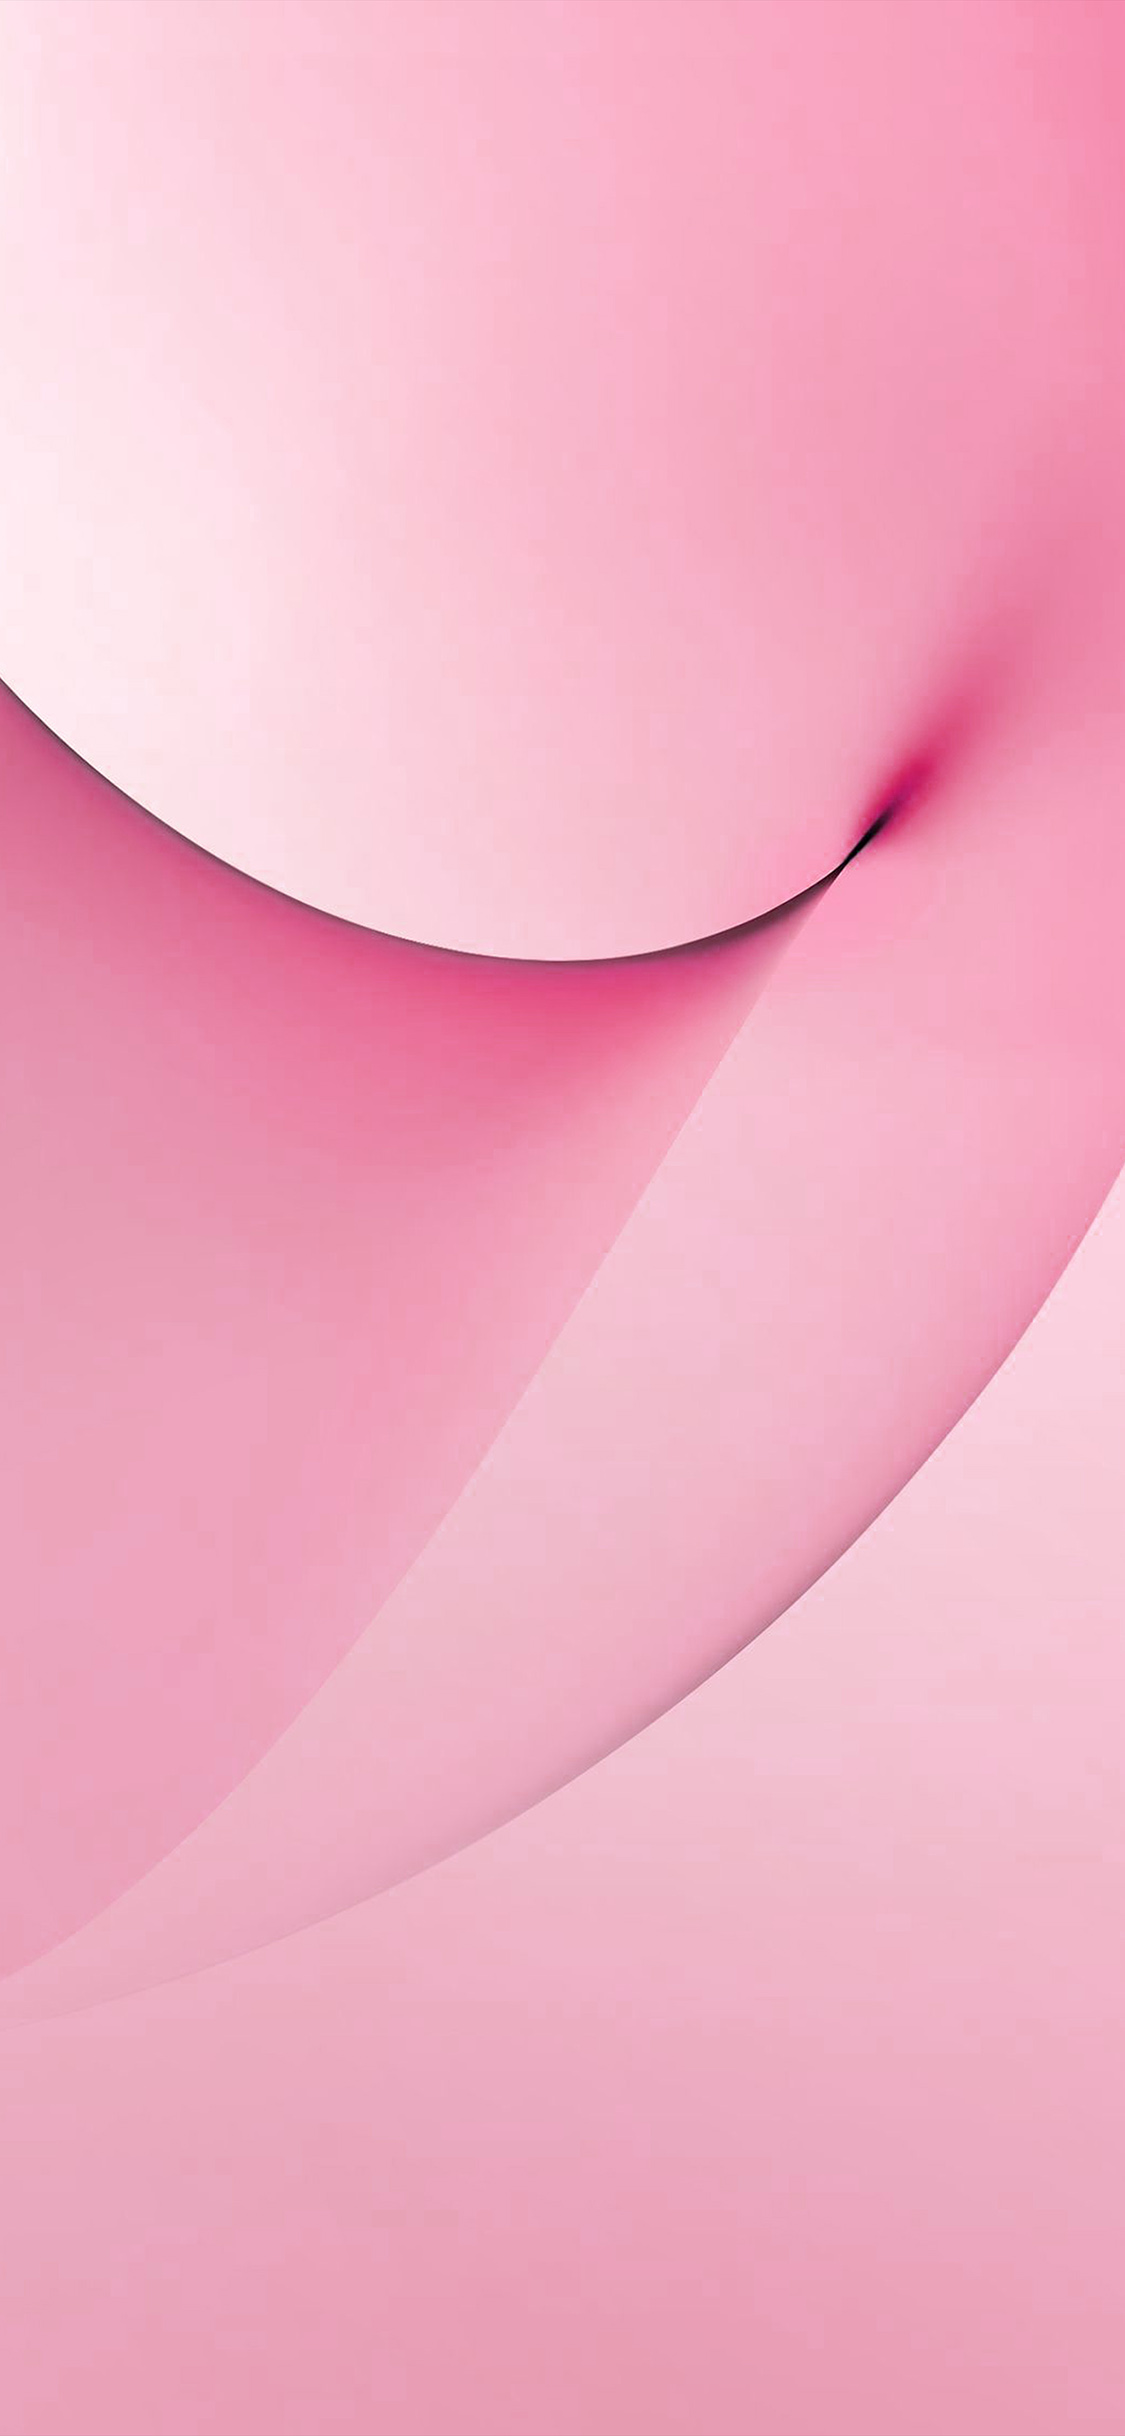 iPhonexpapers.com-Apple-iPhone-wallpaper-vt80-curve-samsung-galaxy-art-pink-pattern-red